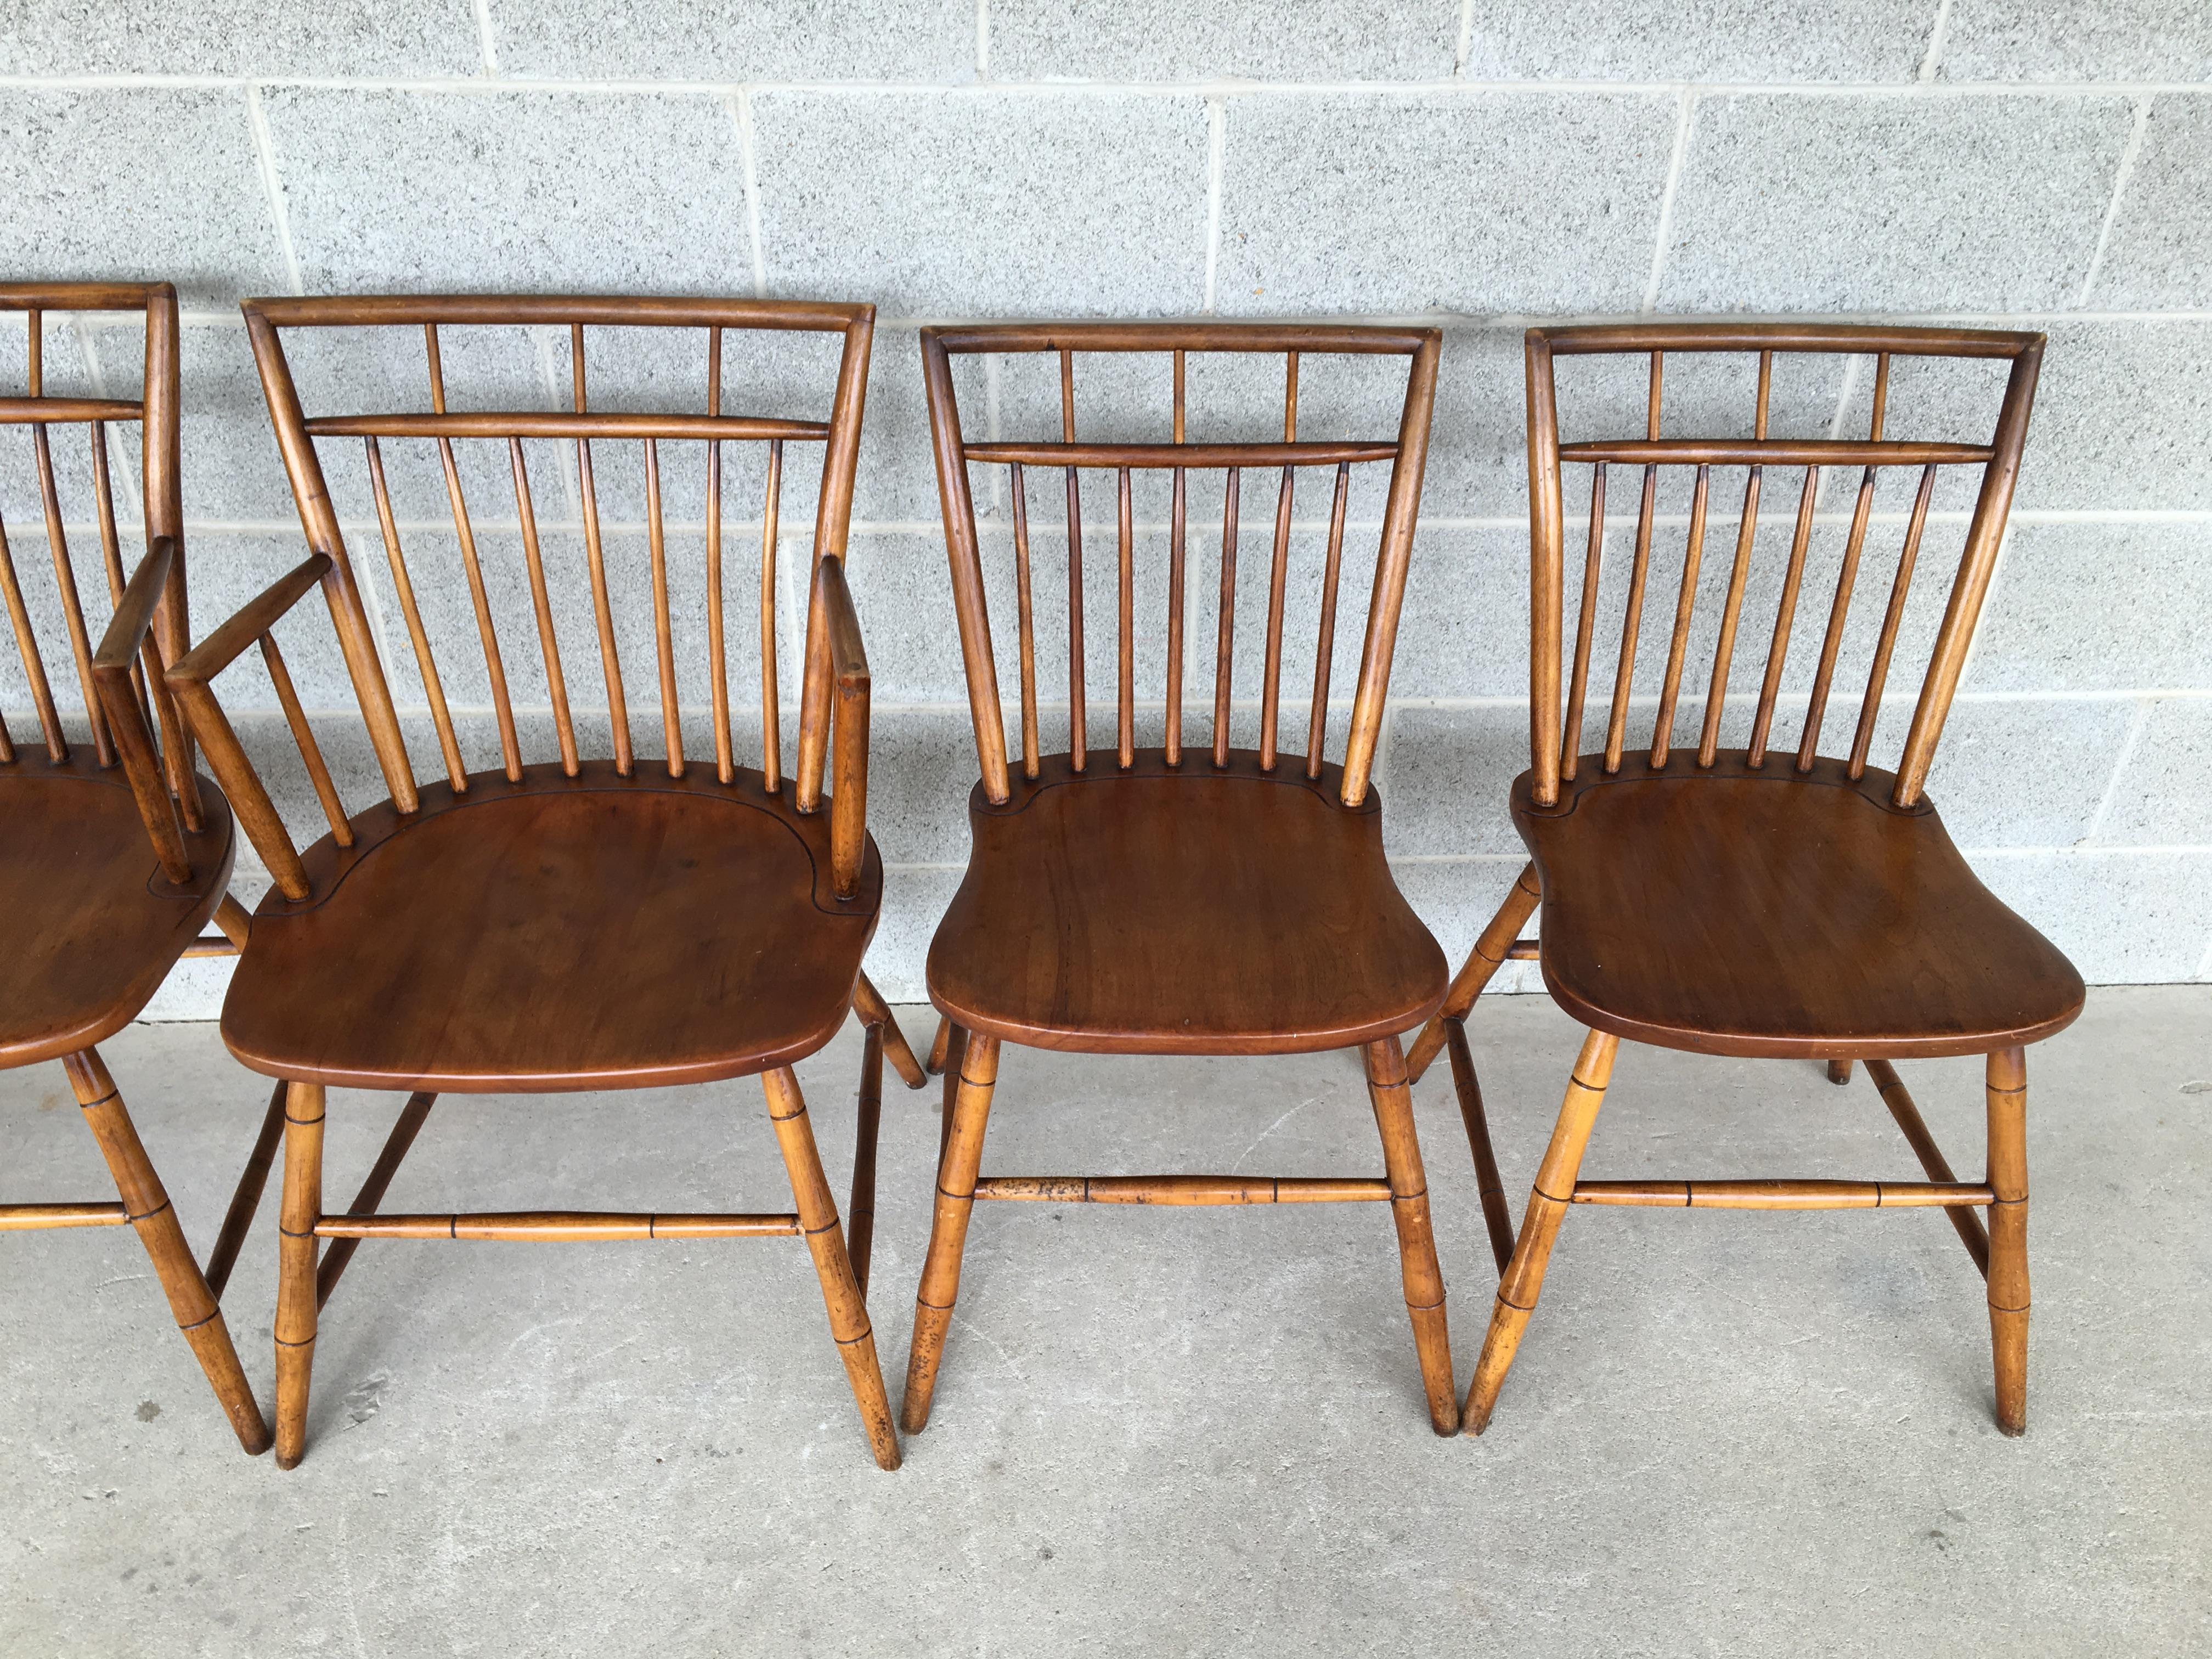 British Colonial Curtis Colonial Reproductions Birdcage Dining Chairs   Set  Of 6 For Sale   Image